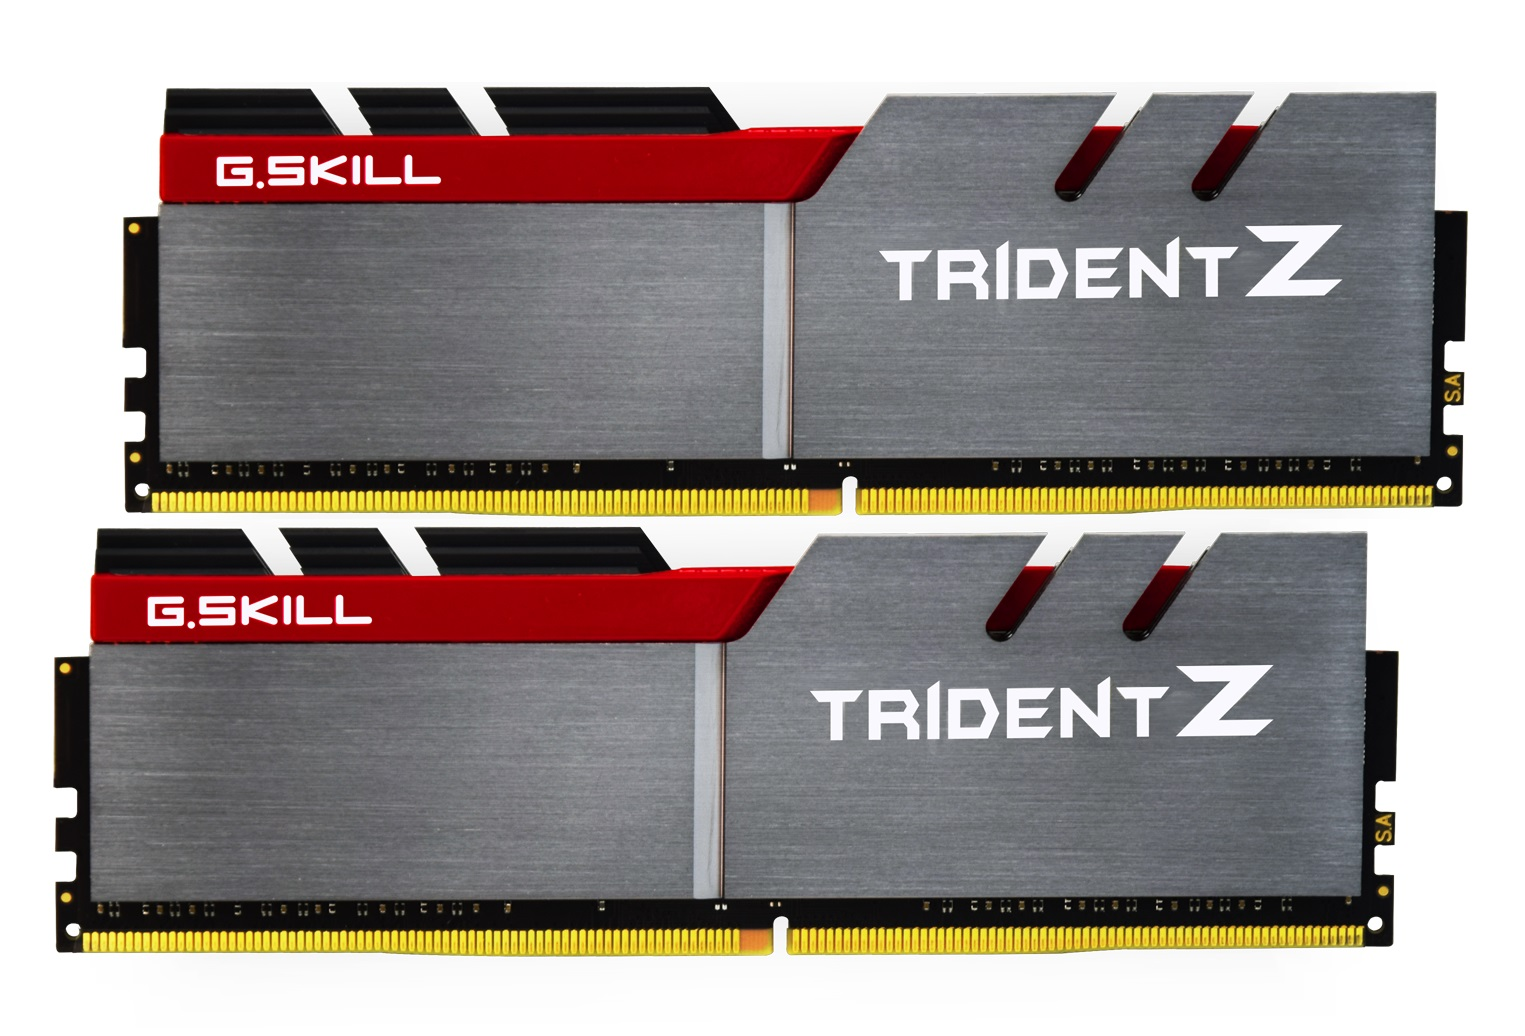 16GB G.Skill DDR4 Trident Z 3000Mhz PC4-24000 CL14 (14-14-14-34) 1.35V Dual Channel Kit (2x8GB)